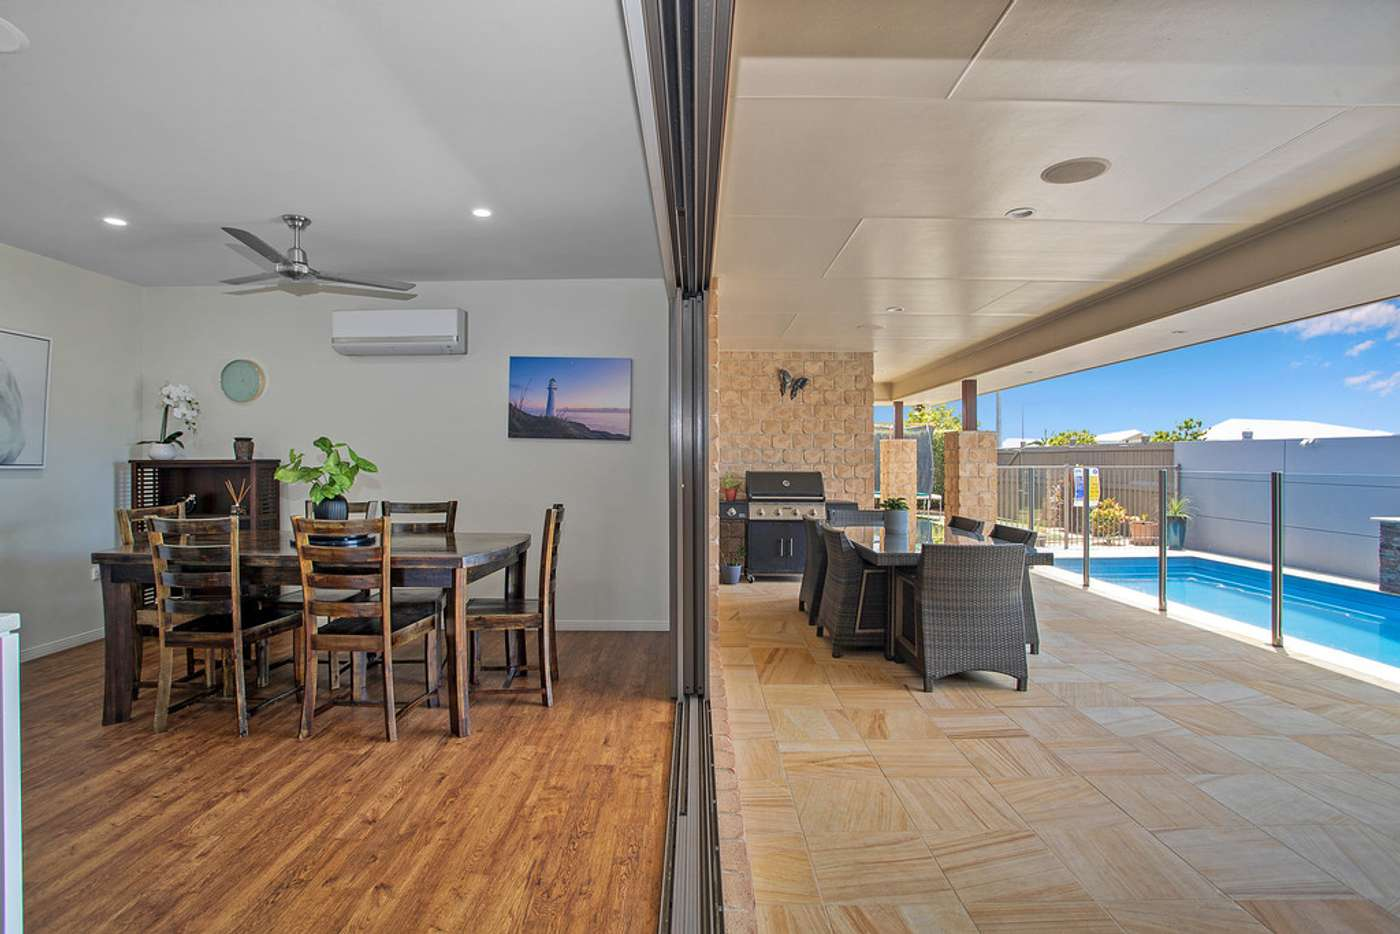 Main view of Homely house listing, 2 Roma Court, Beaconsfield QLD 4740